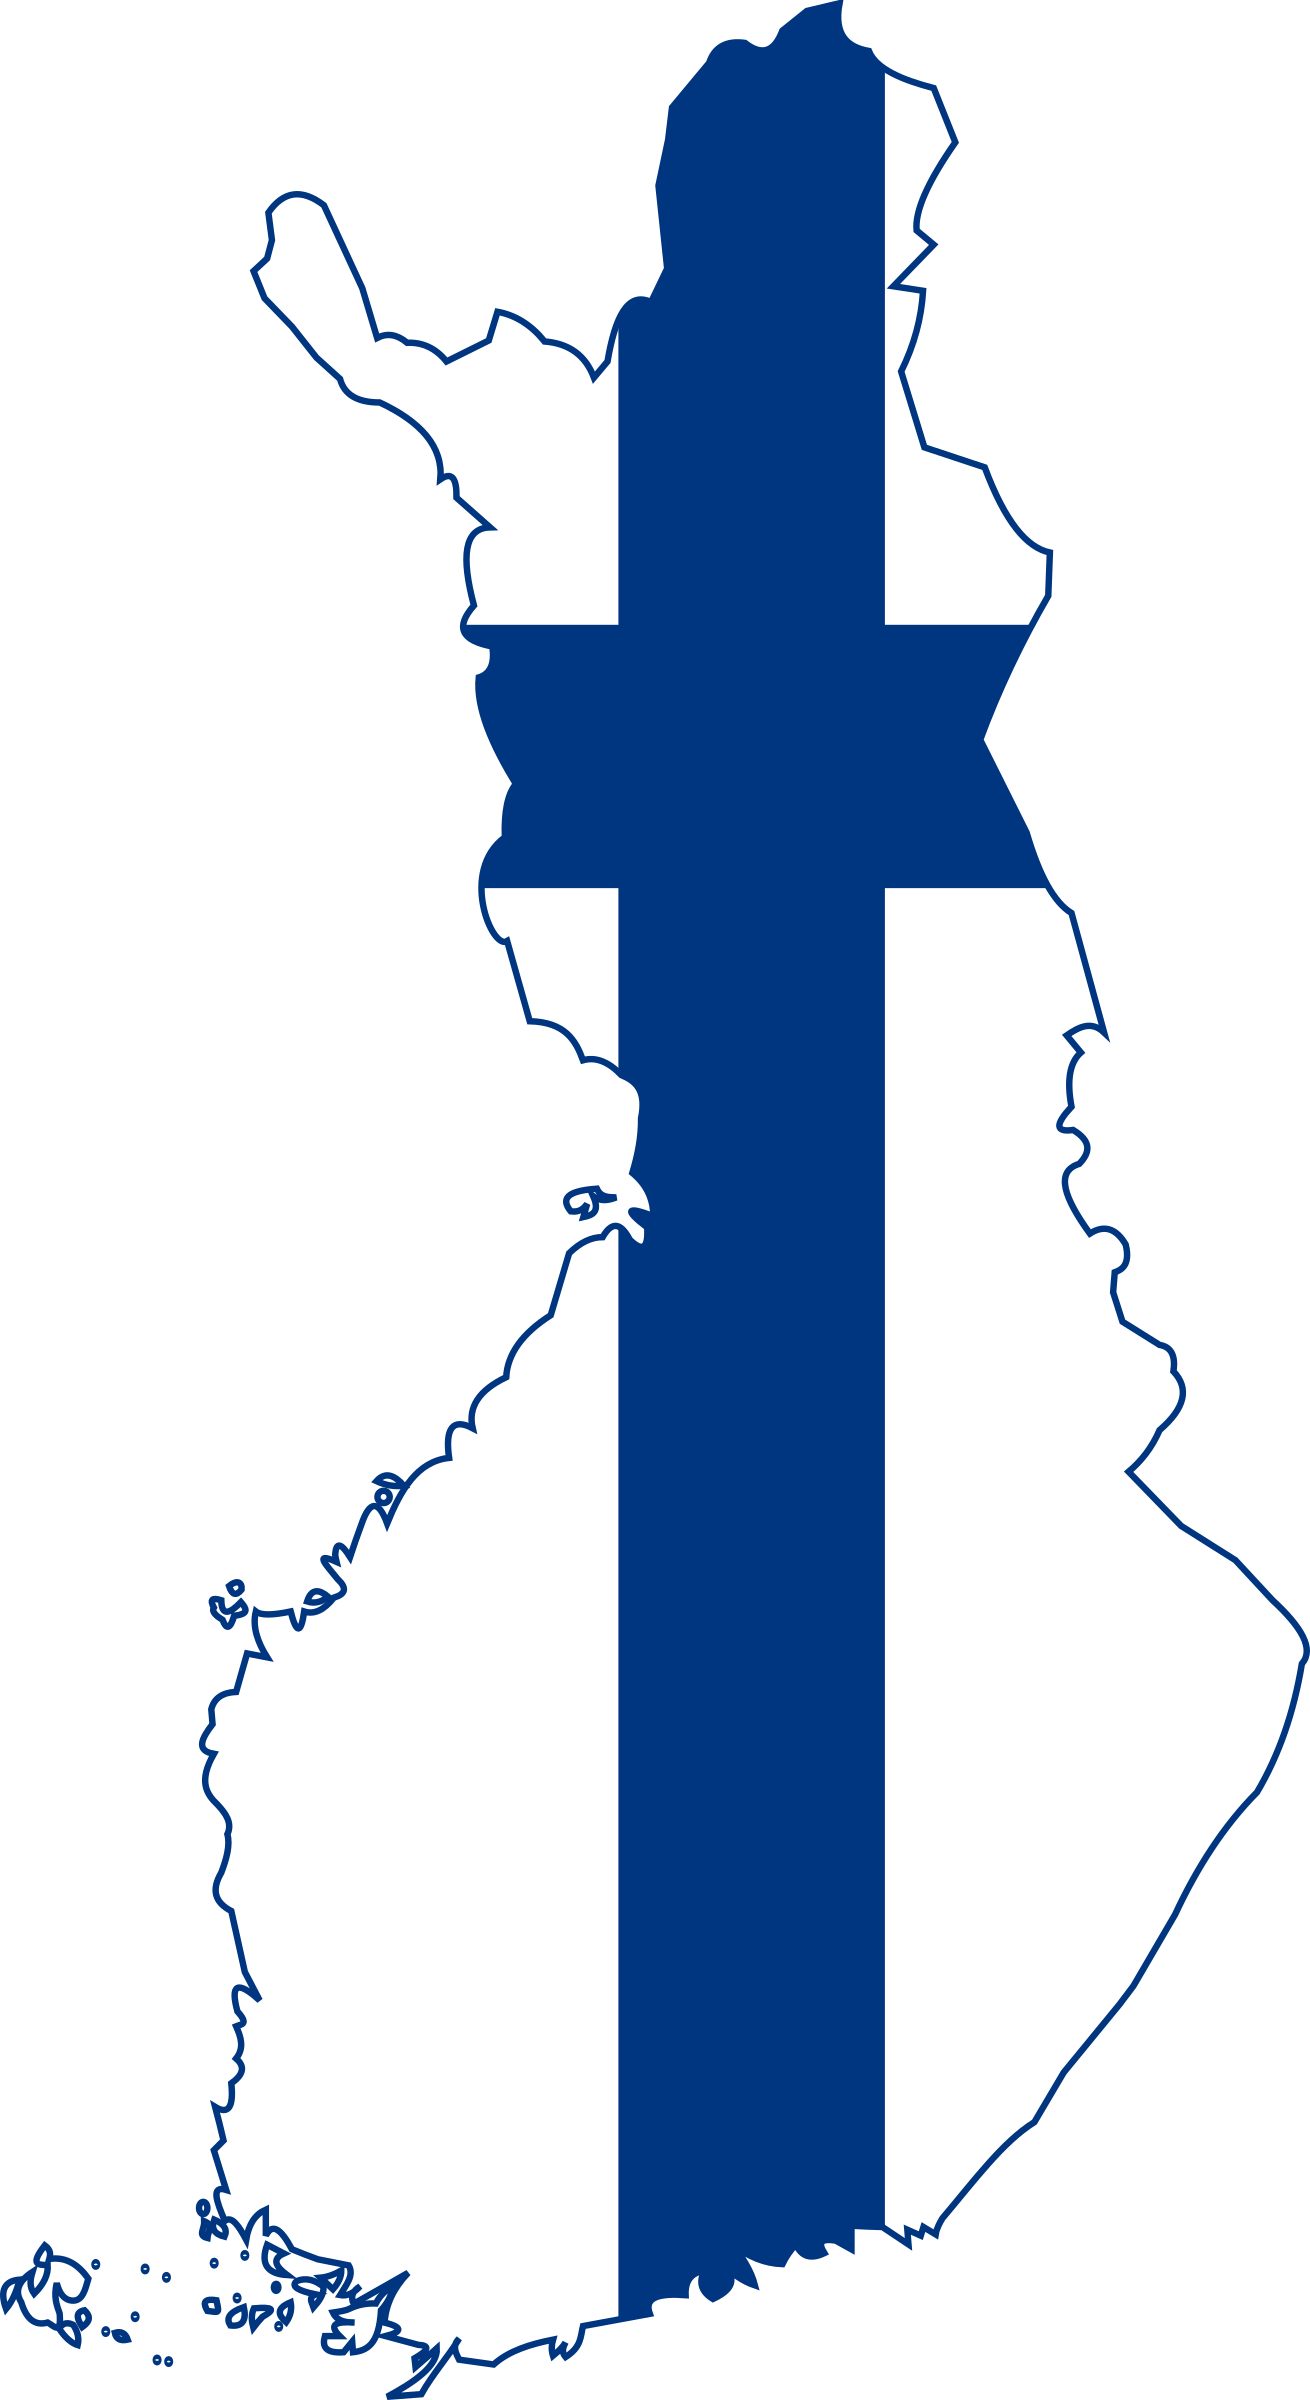 Finland map with flag by gatorgirl514